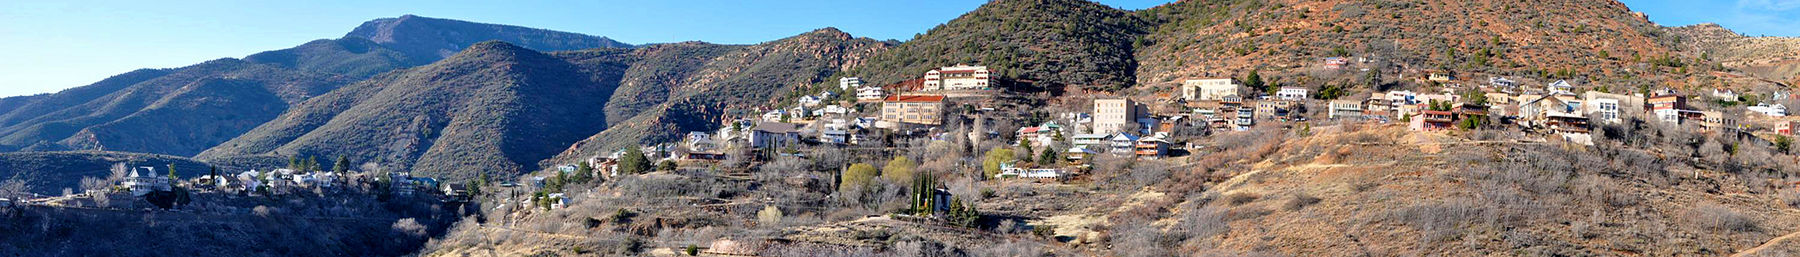 View of Jerome from Jerome State Historic Park